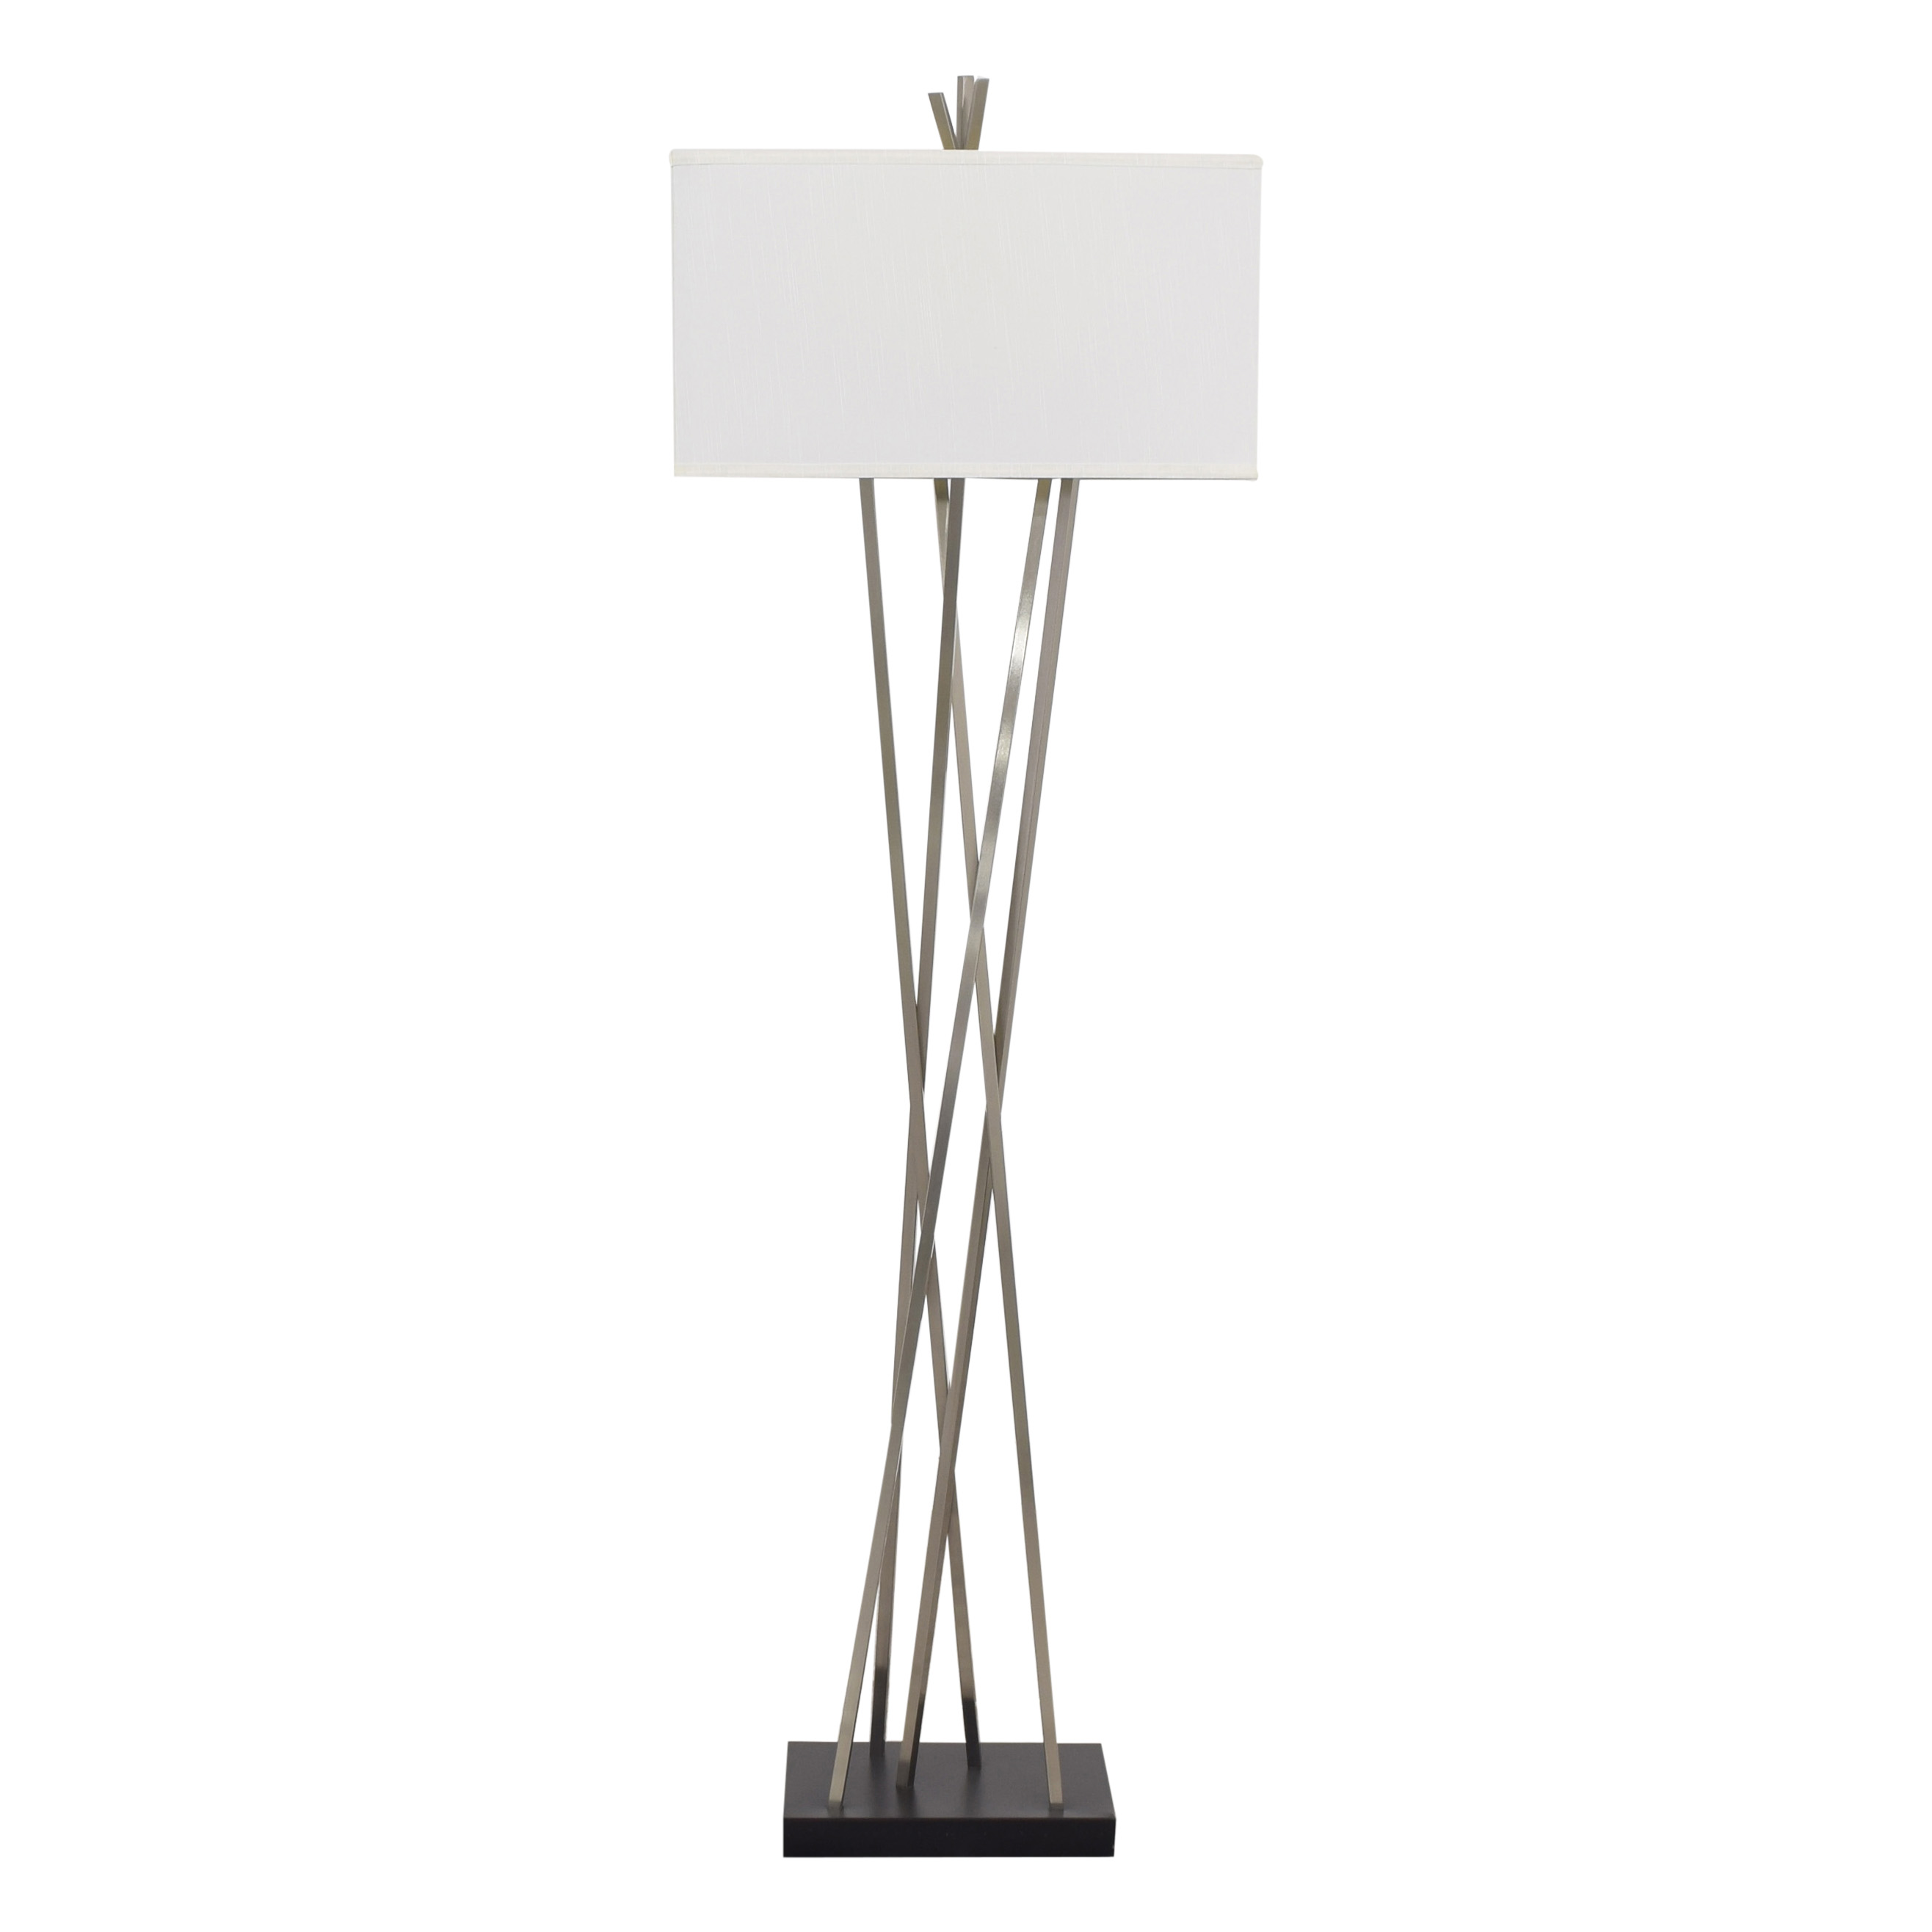 shop Possini Euro Design Asymetry Floor Lamp Possini Euro Design Lamps